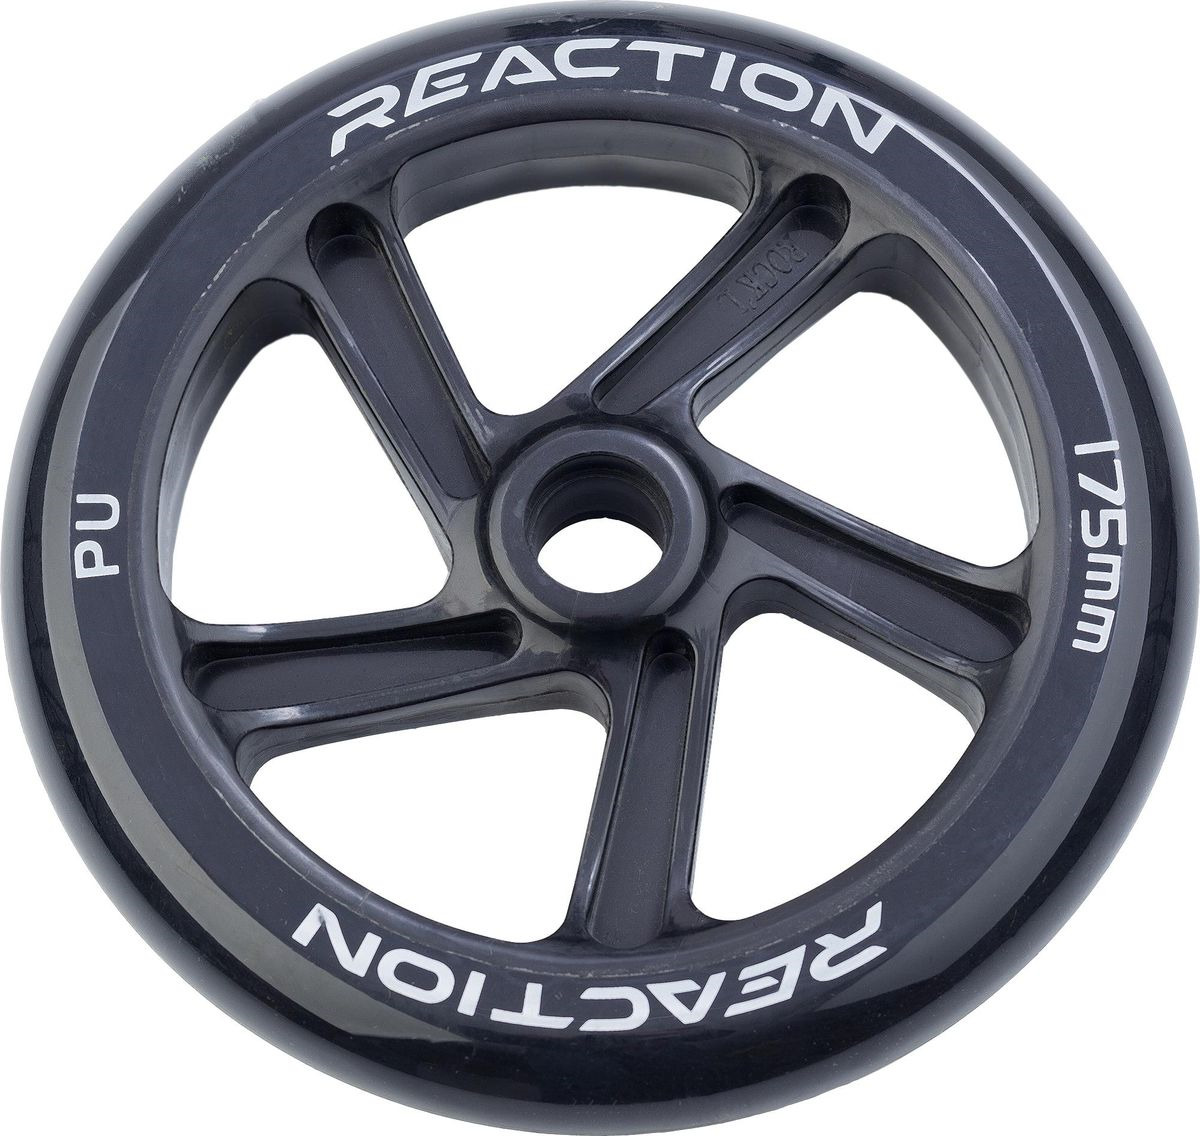 Колесо для самоката Reaction Wheel 175 Scooter Wheel, ERERO05303, черный колесо 6х2 для самоката